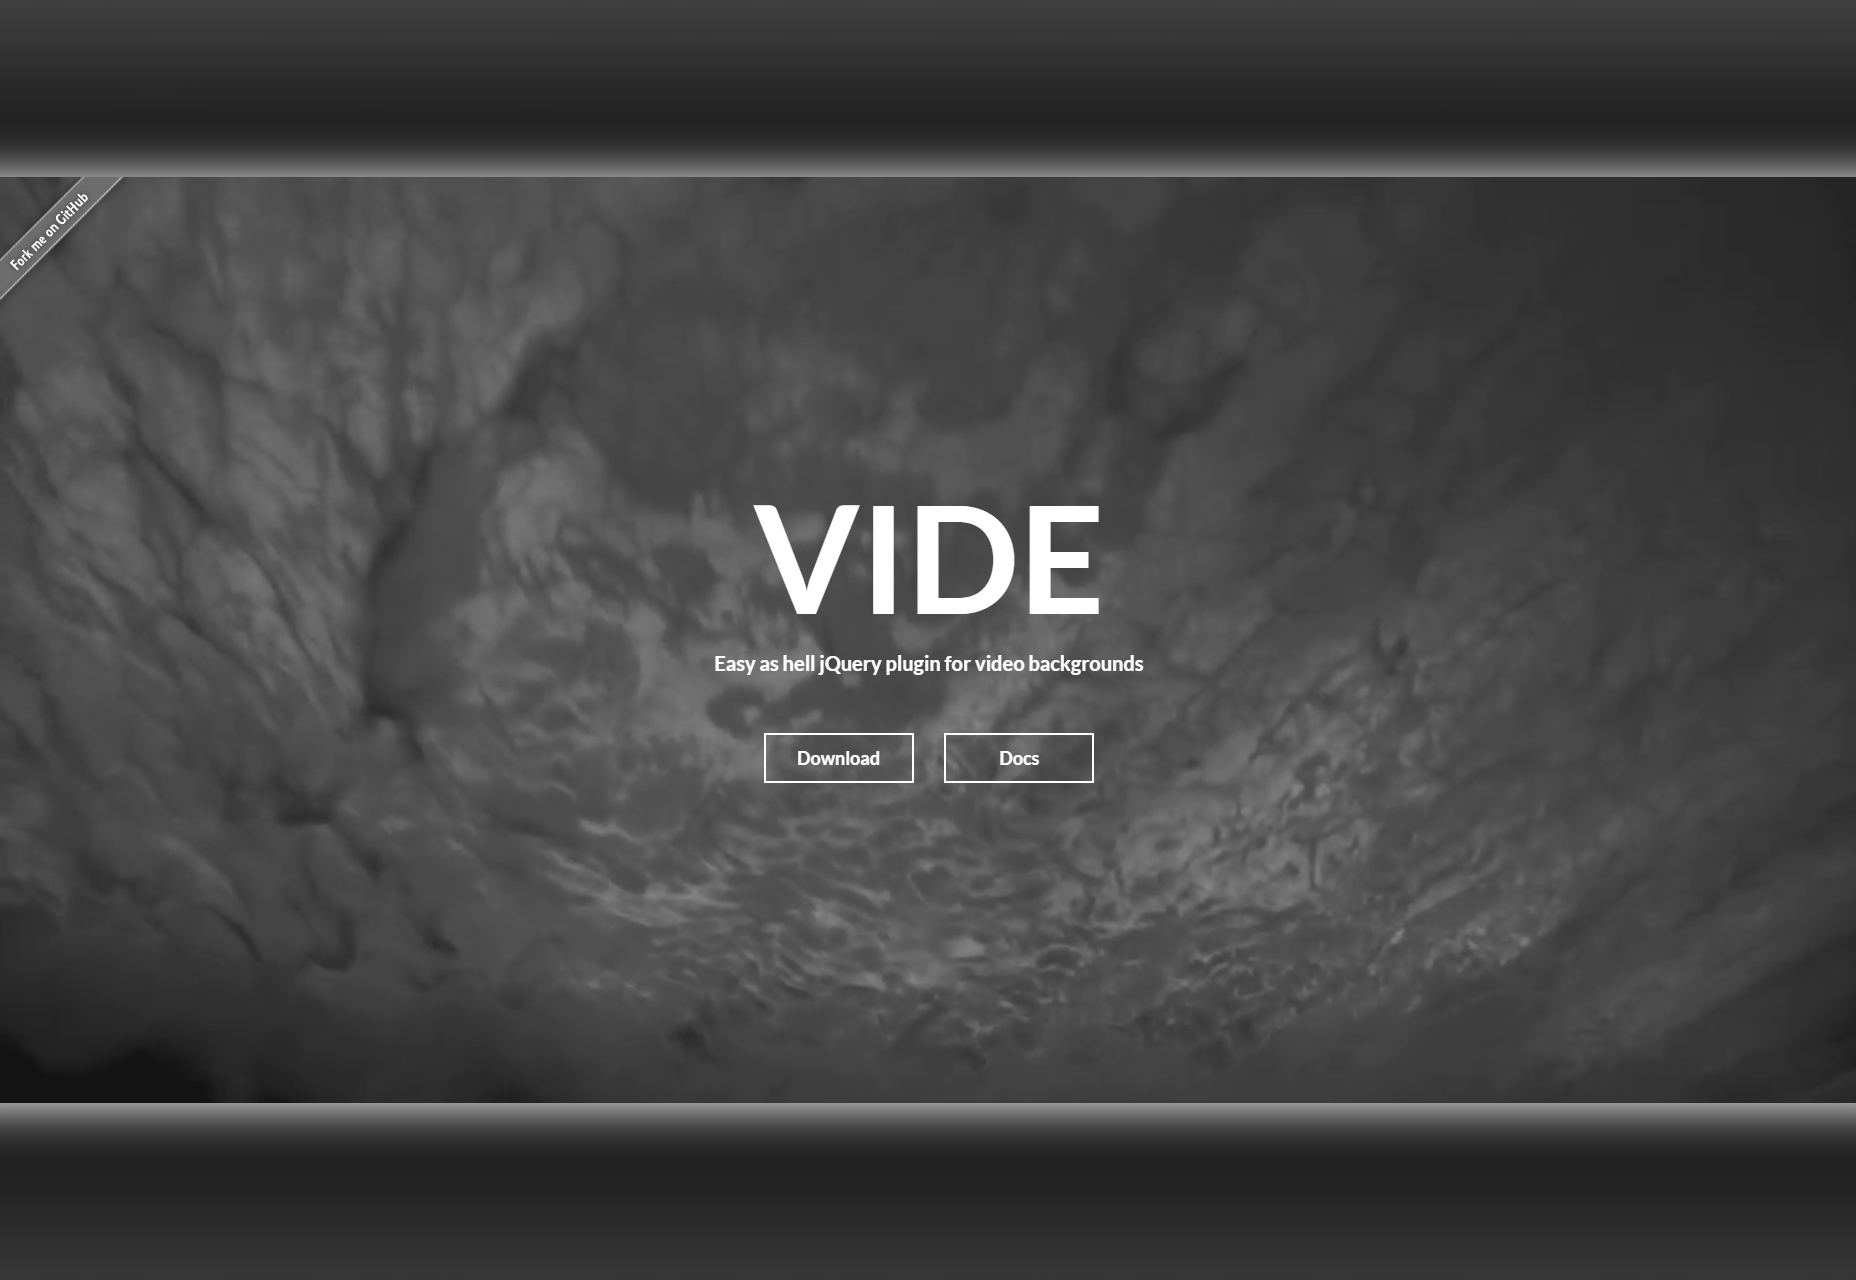 vide-video-background-jquery-plugin-